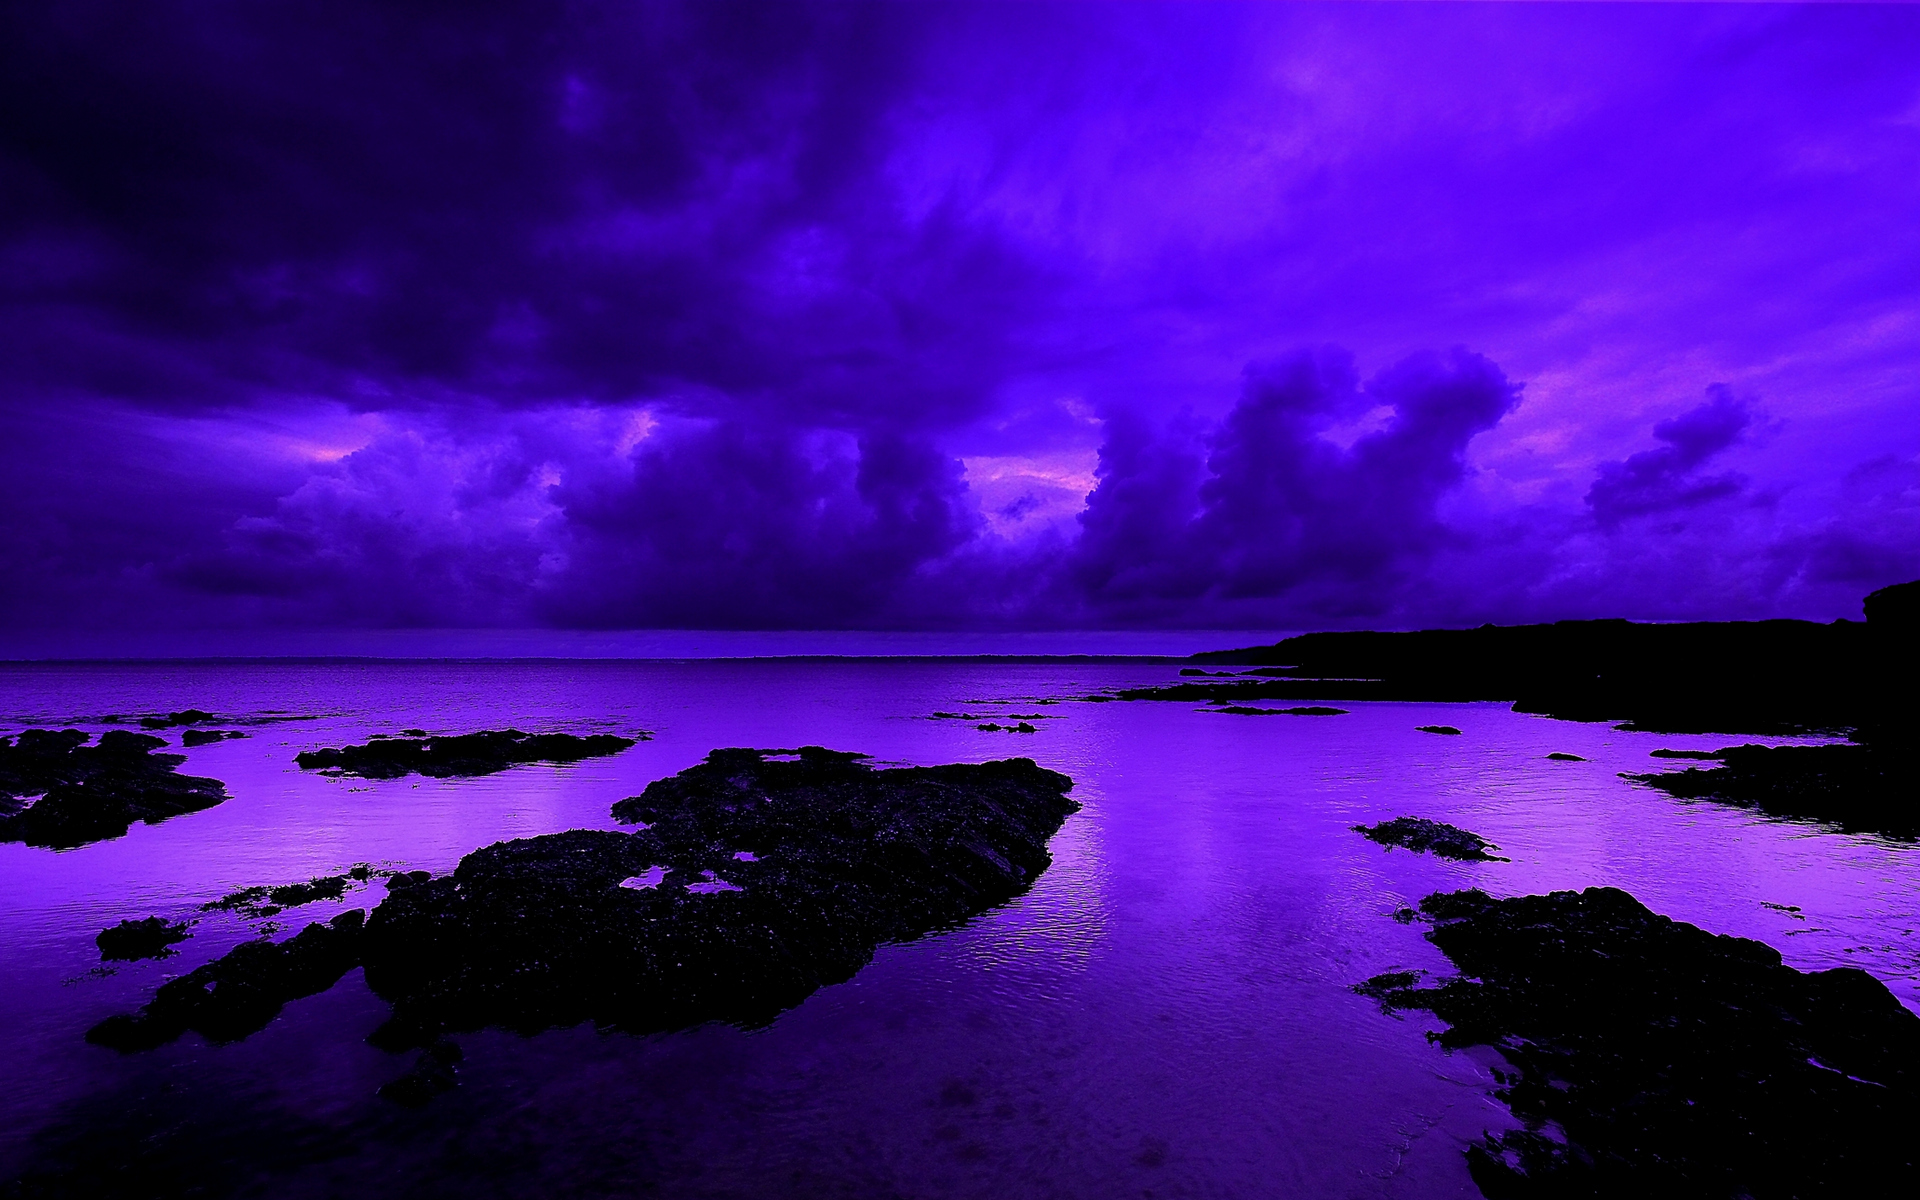 Stunning Violet Wallpaper